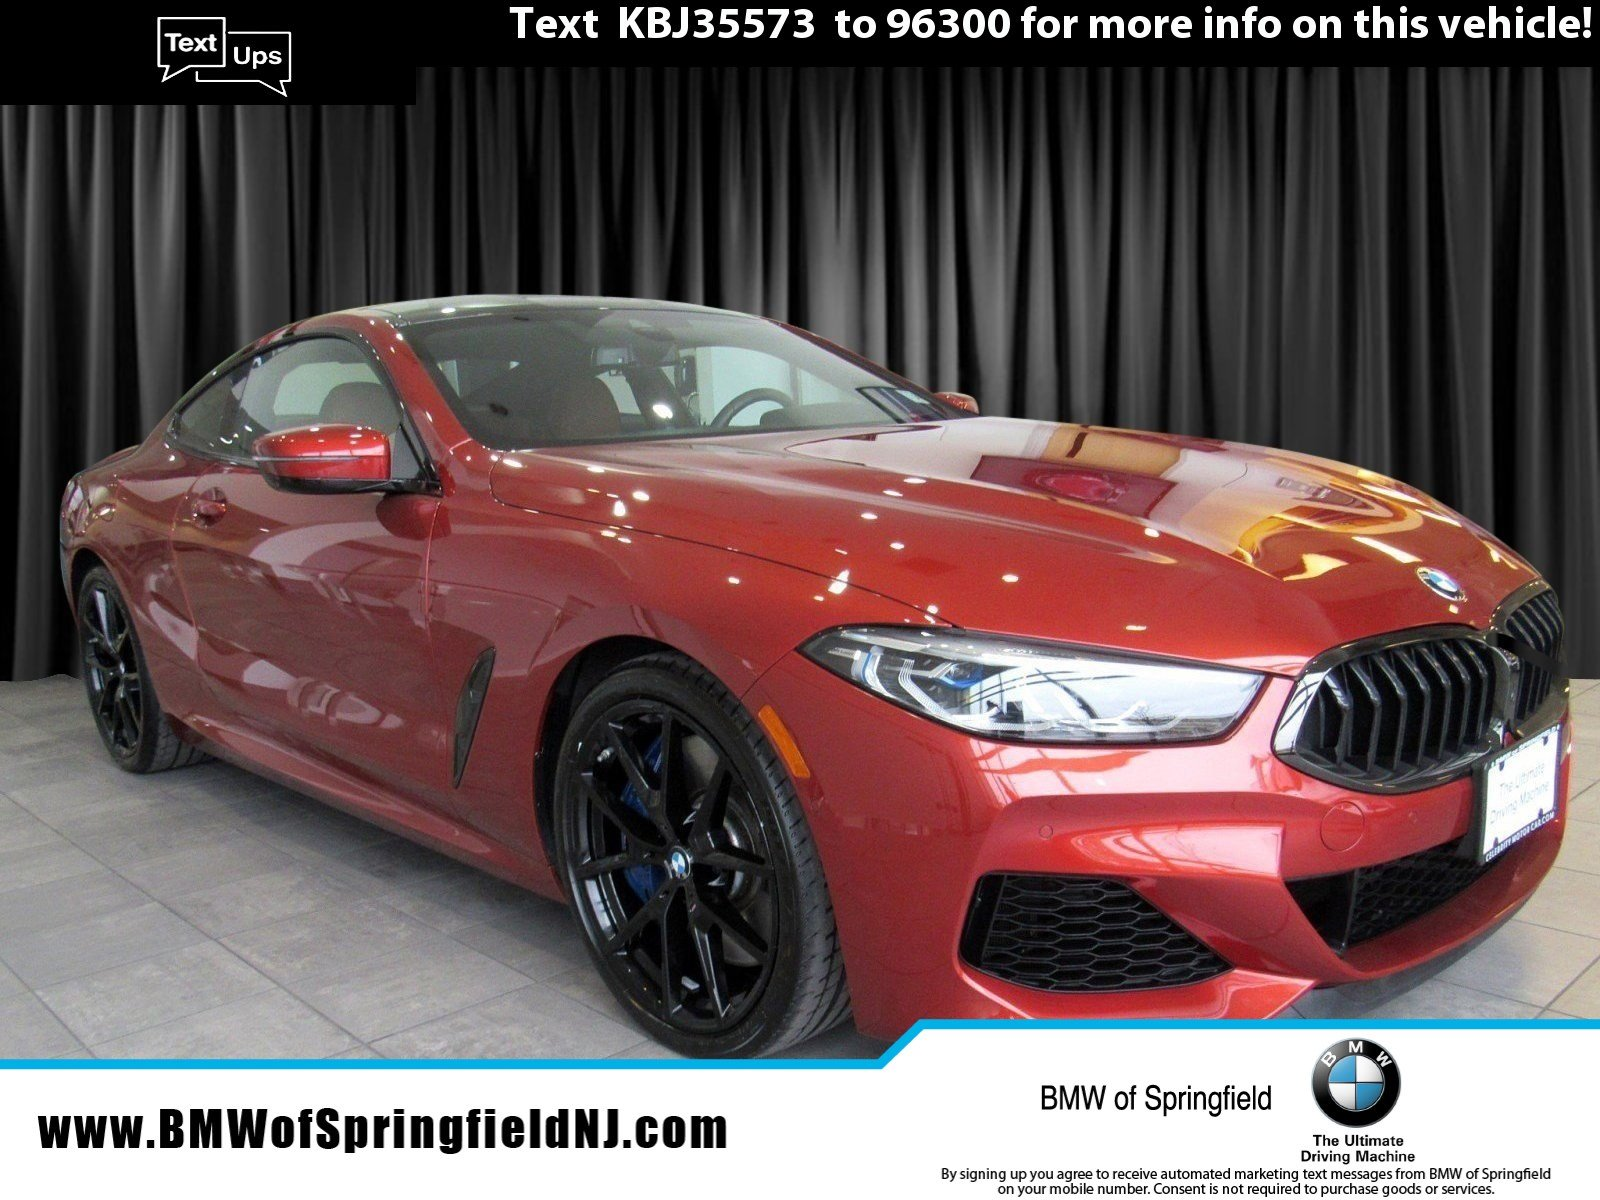 2019 BMW M850i xDRIVE -- CERTIFIED PRE-OWNED